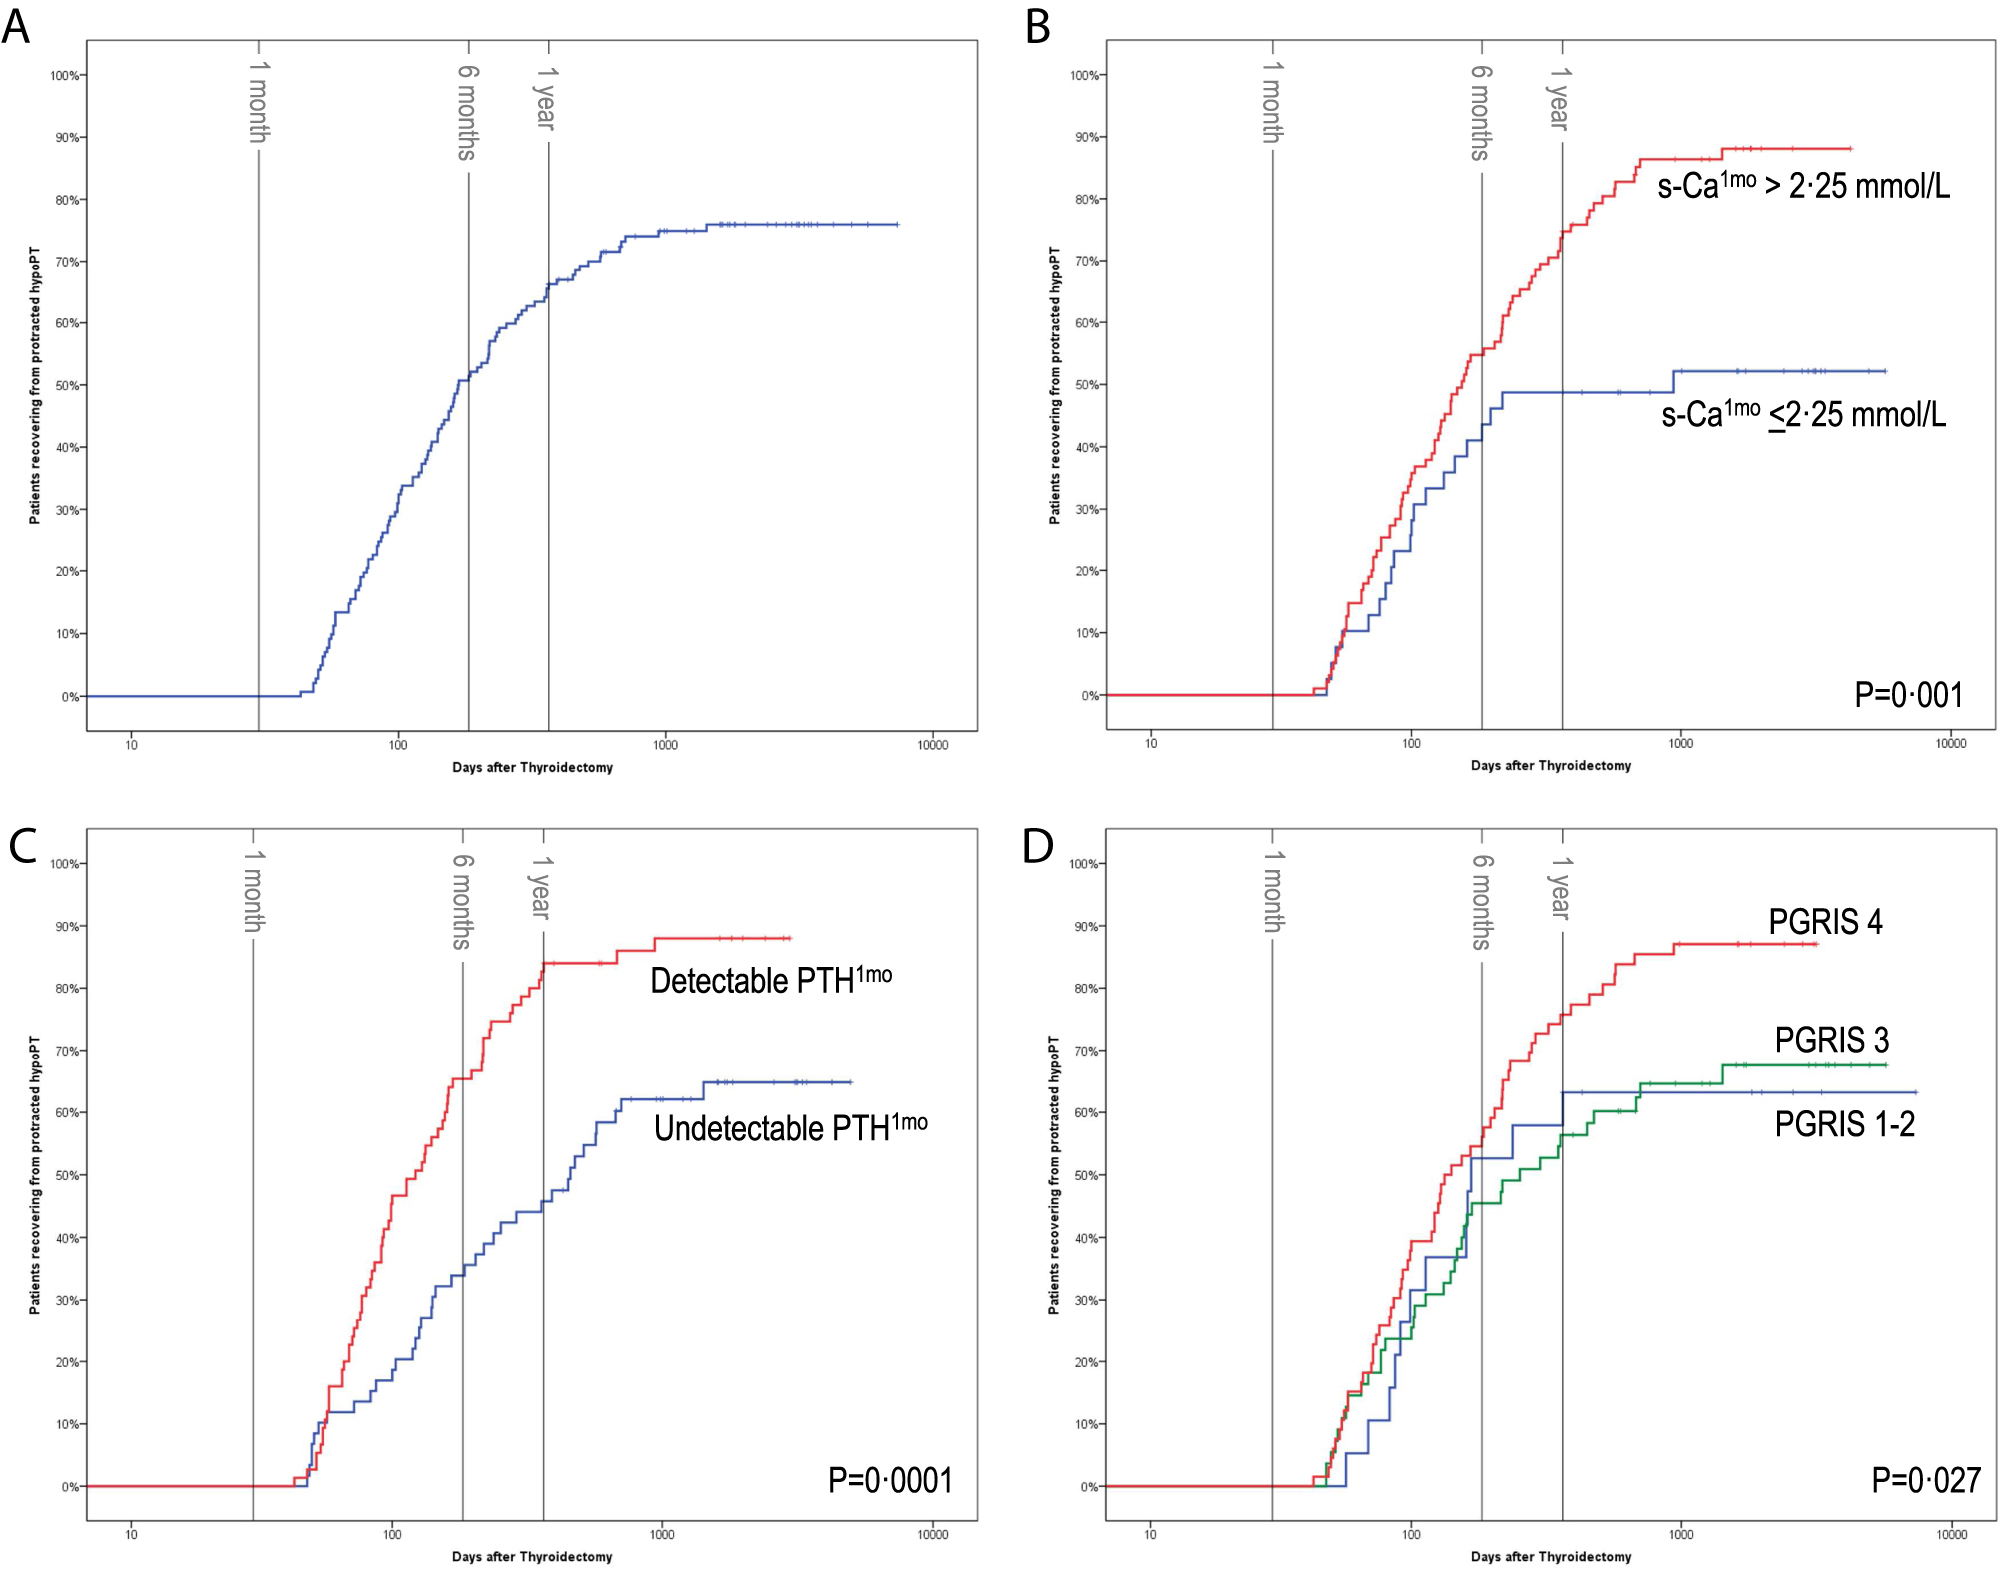 Time To Parathyroid Function Recovery In Patients With Protracted